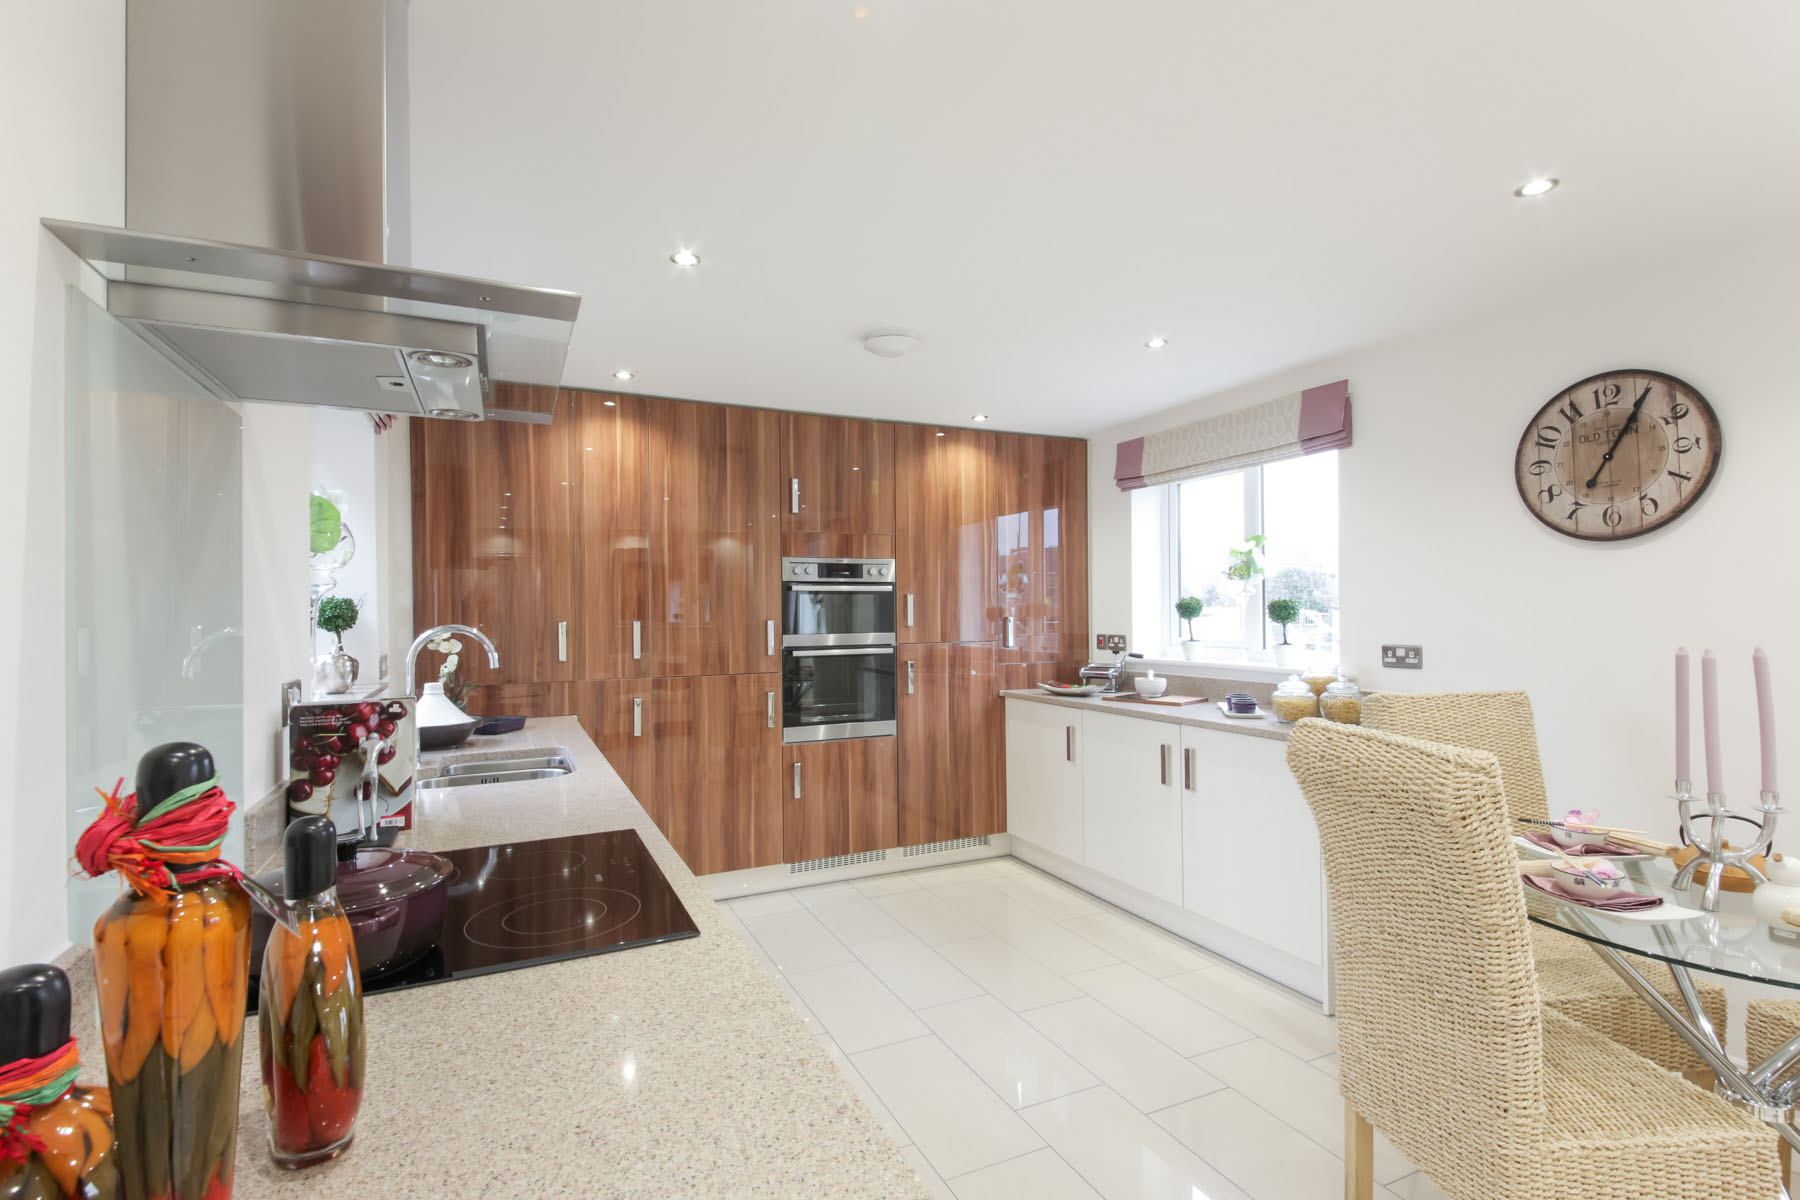 Typical Taylor Wimpey kitchen